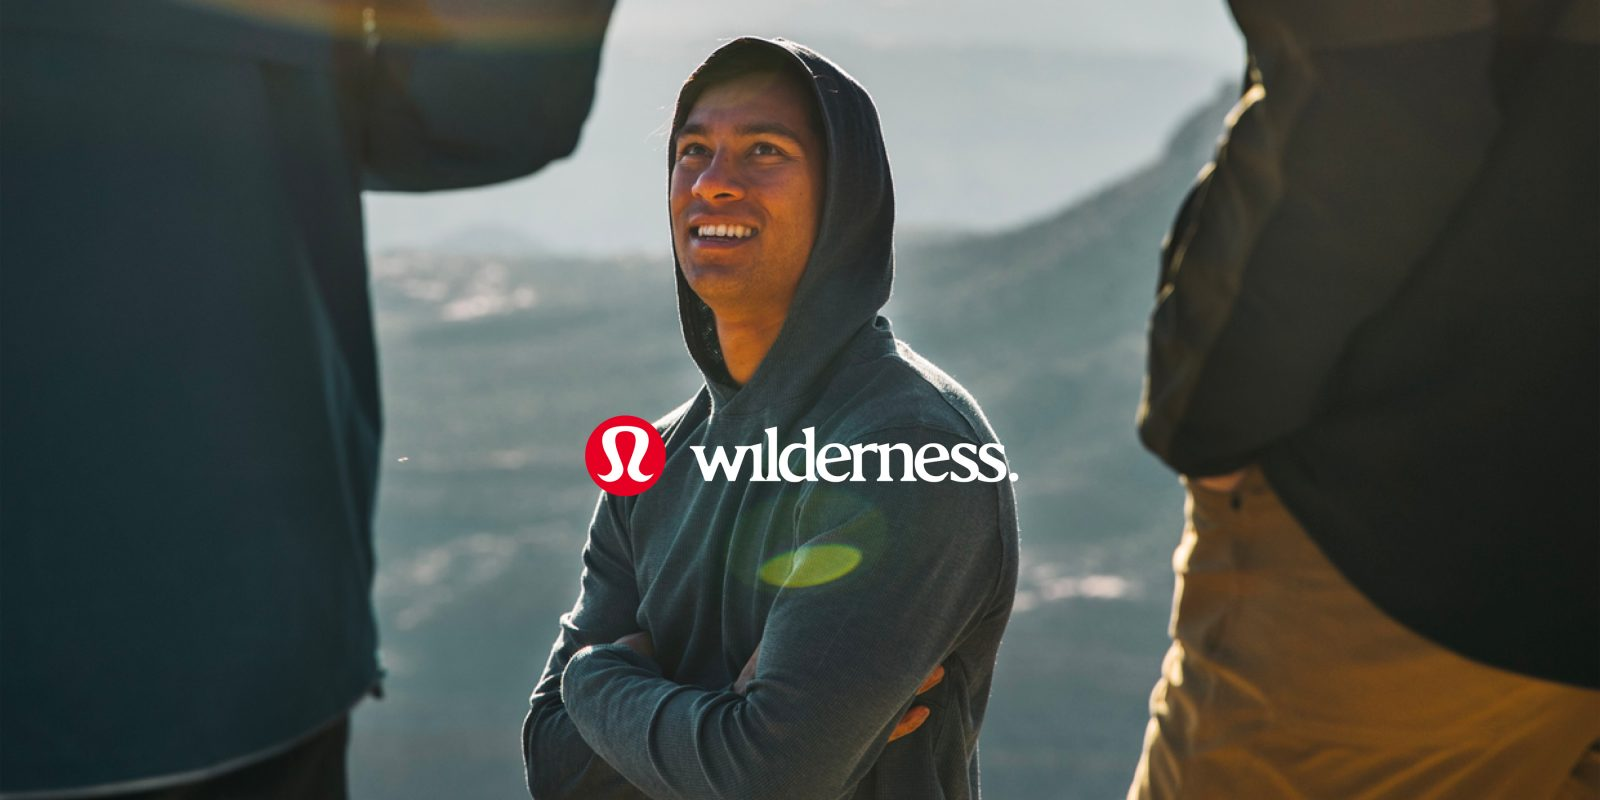 Lululemon x Wilderness Collection gets you outdoors with prices from $24